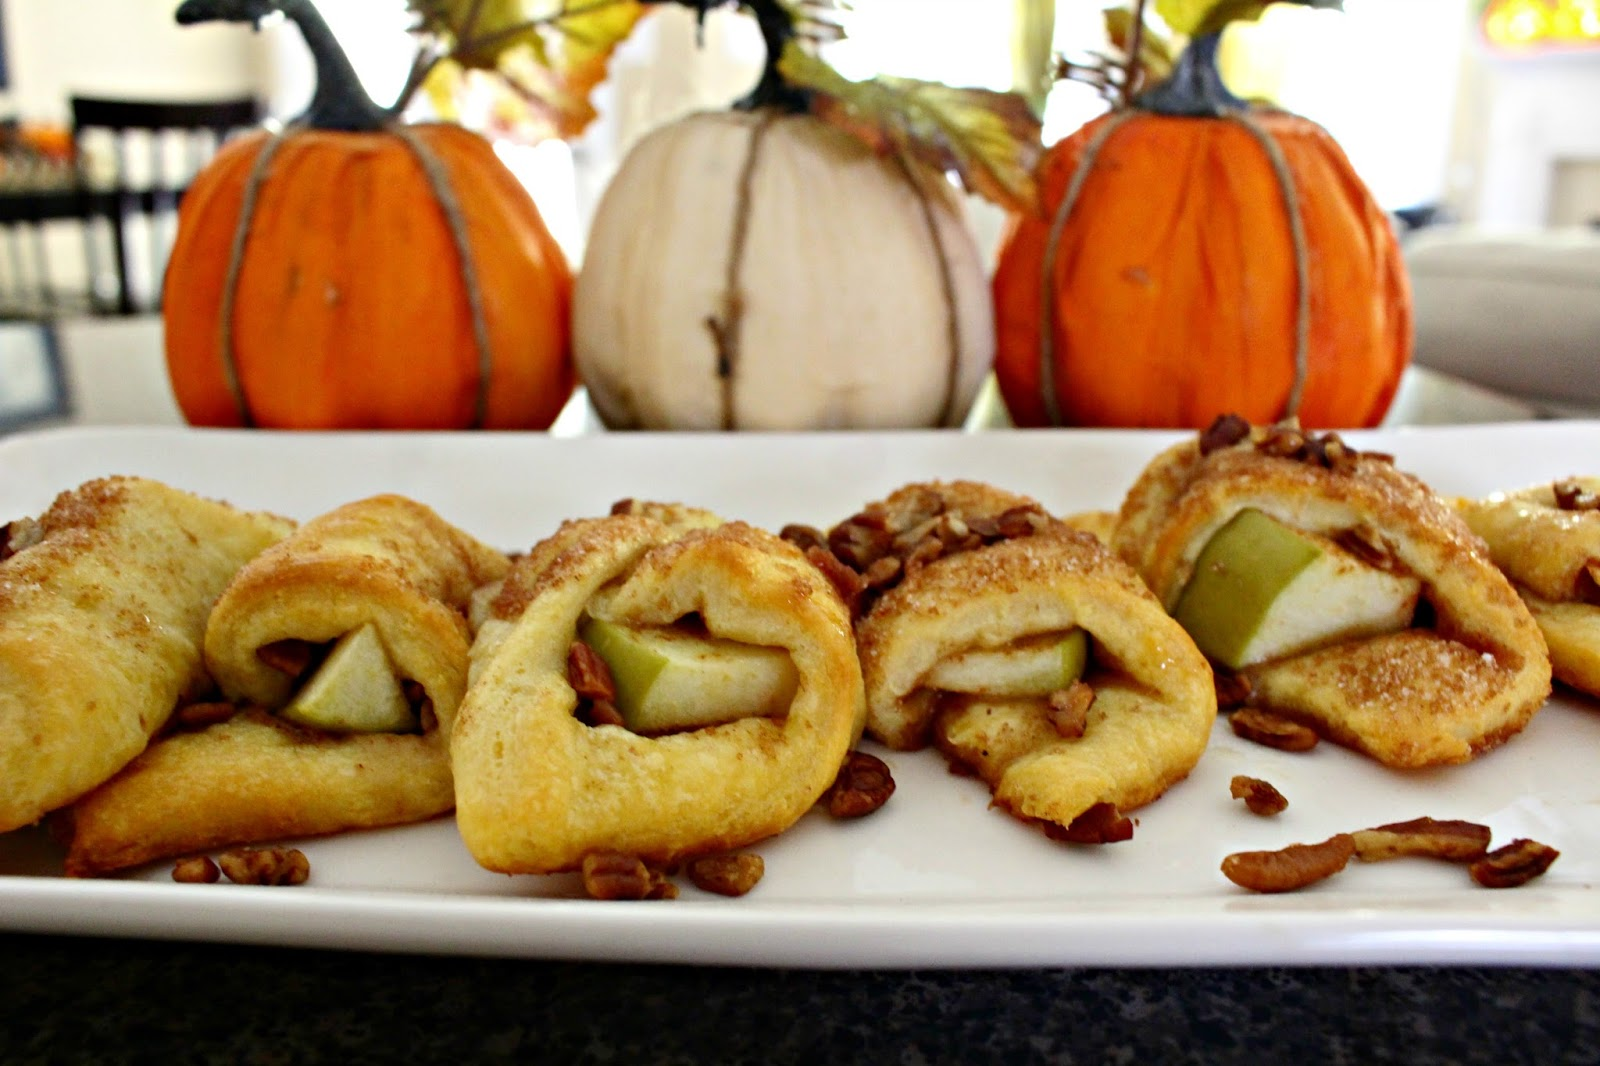 Linens and Leggings: The Lazy Girl's Recipe for Apple Pie Turnovers